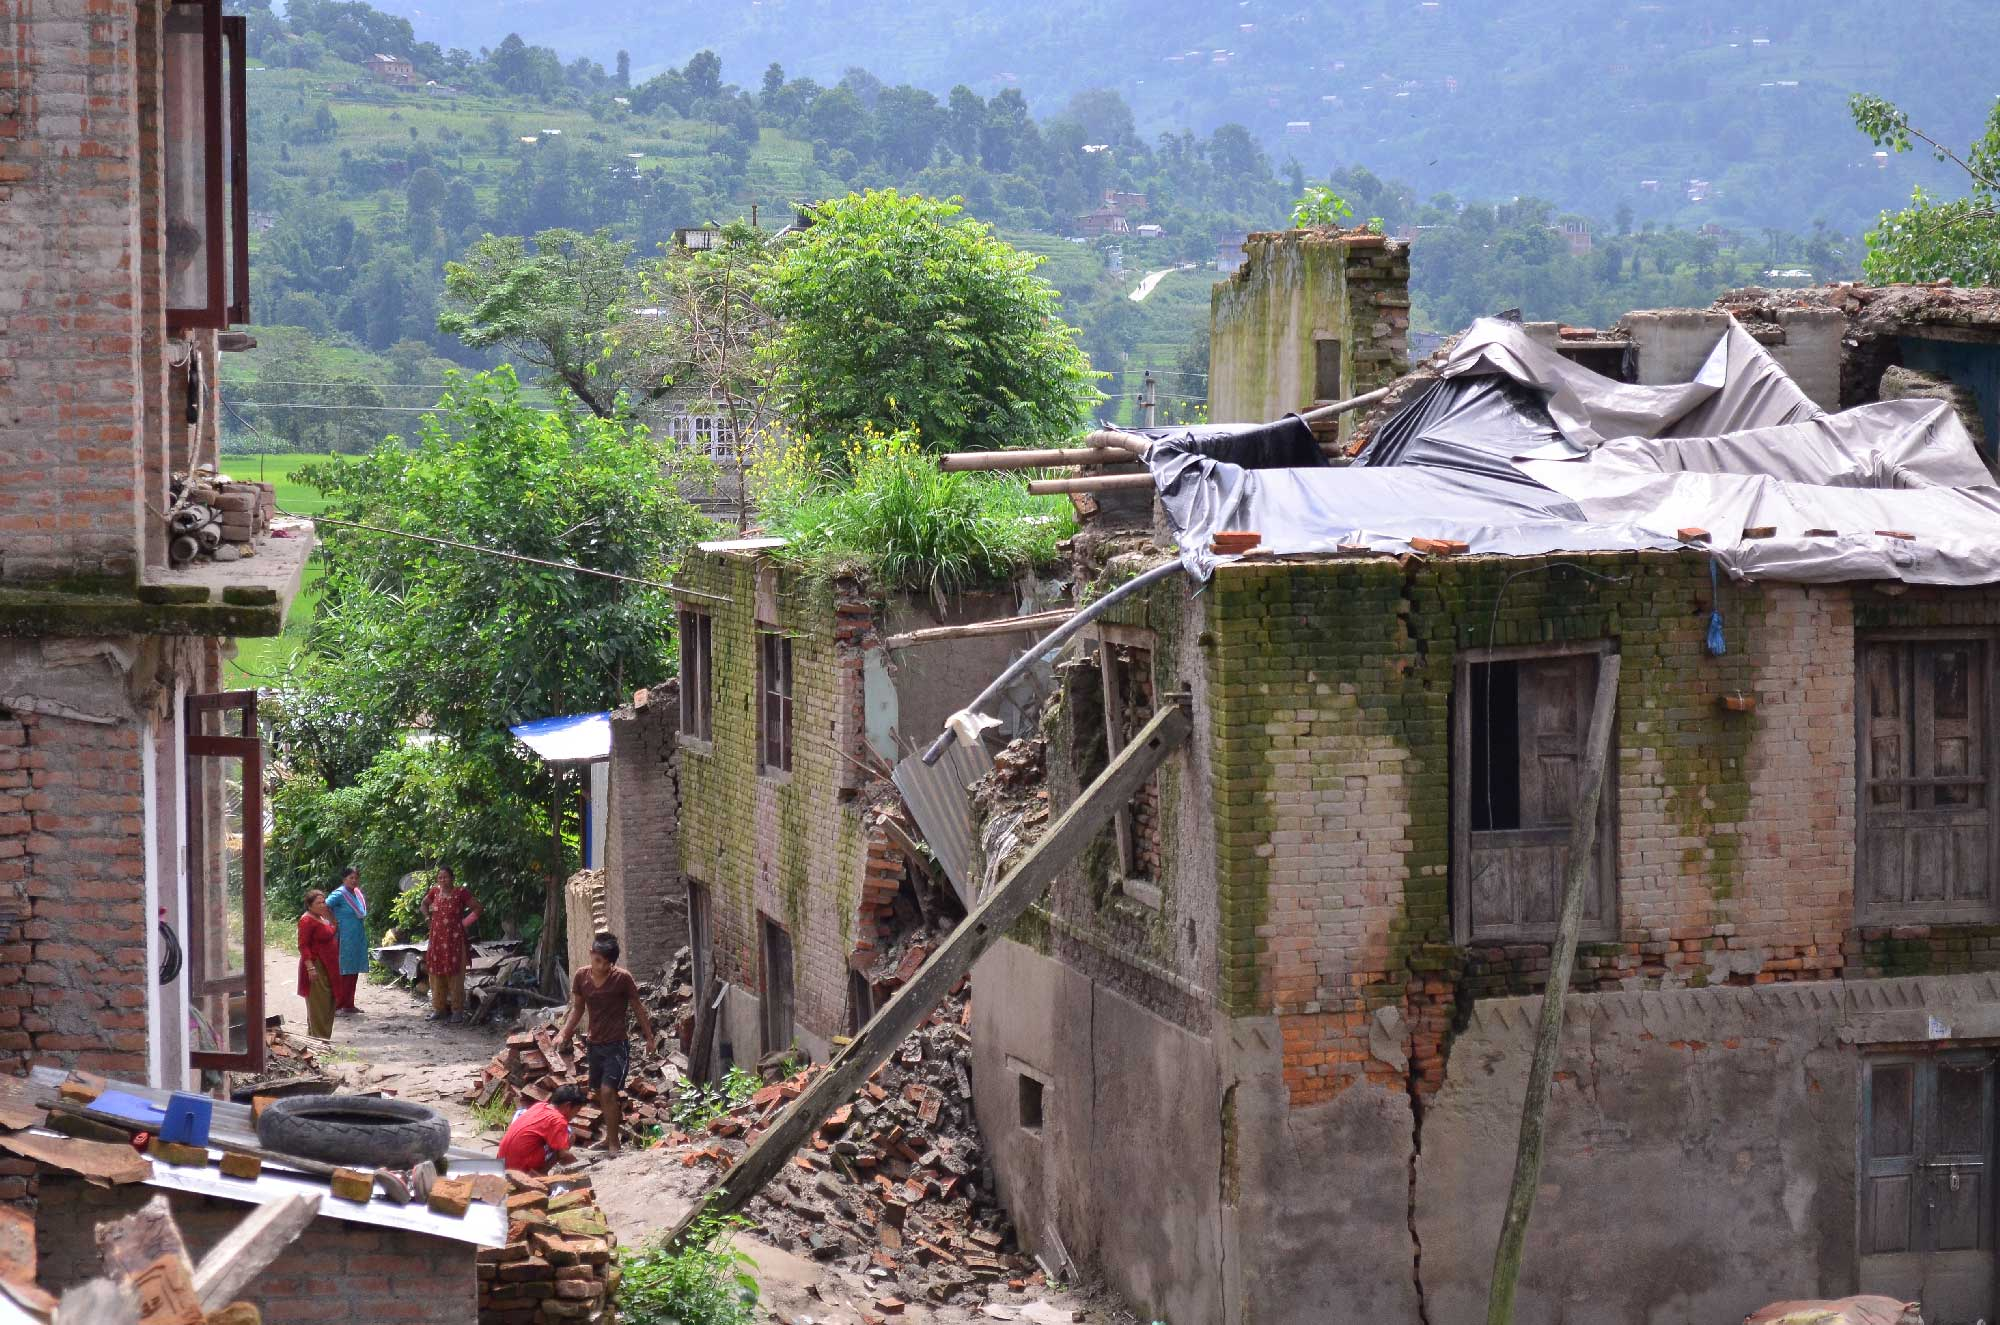 A view of Sankhu, one of the villages that suffered severe destruction in the Nepal earthquake. Photo: Pushkala Aripaka